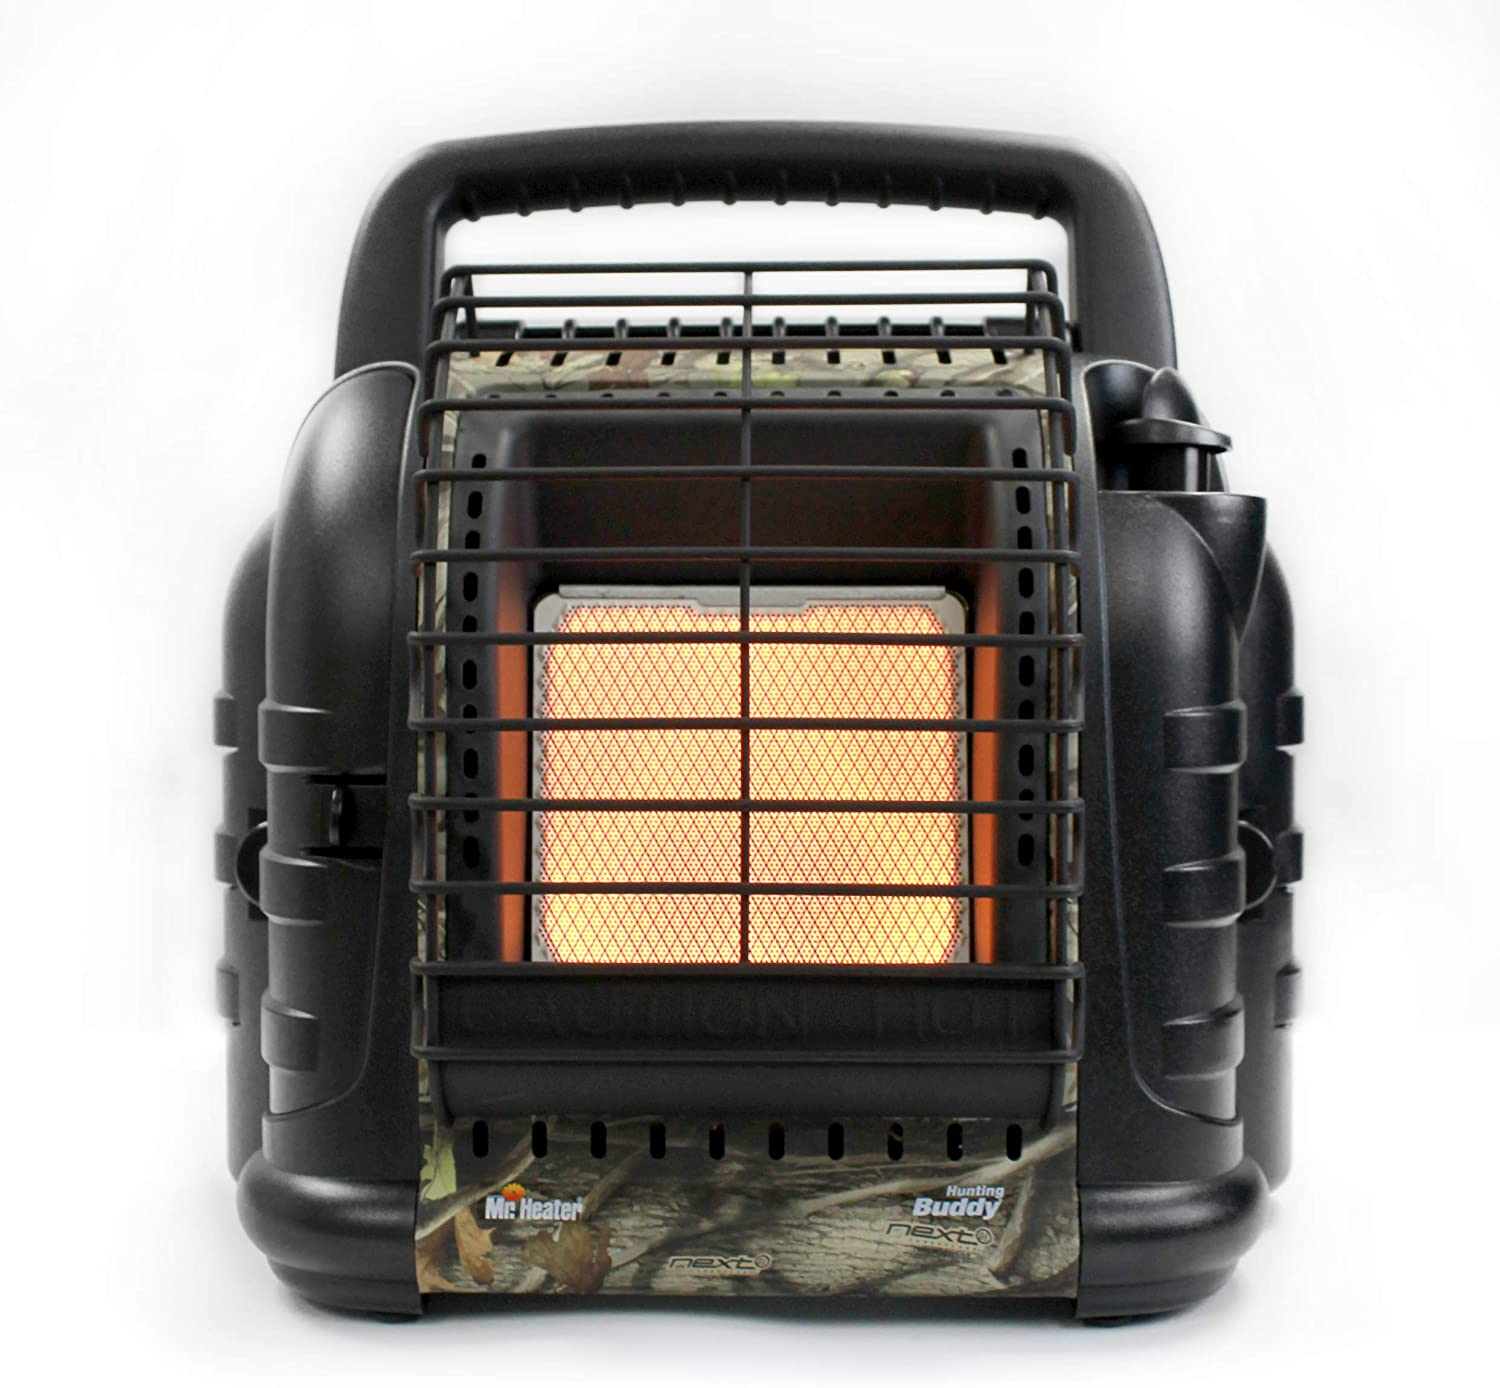 Mr. Heater Hunting Buddy Portable Space Heater